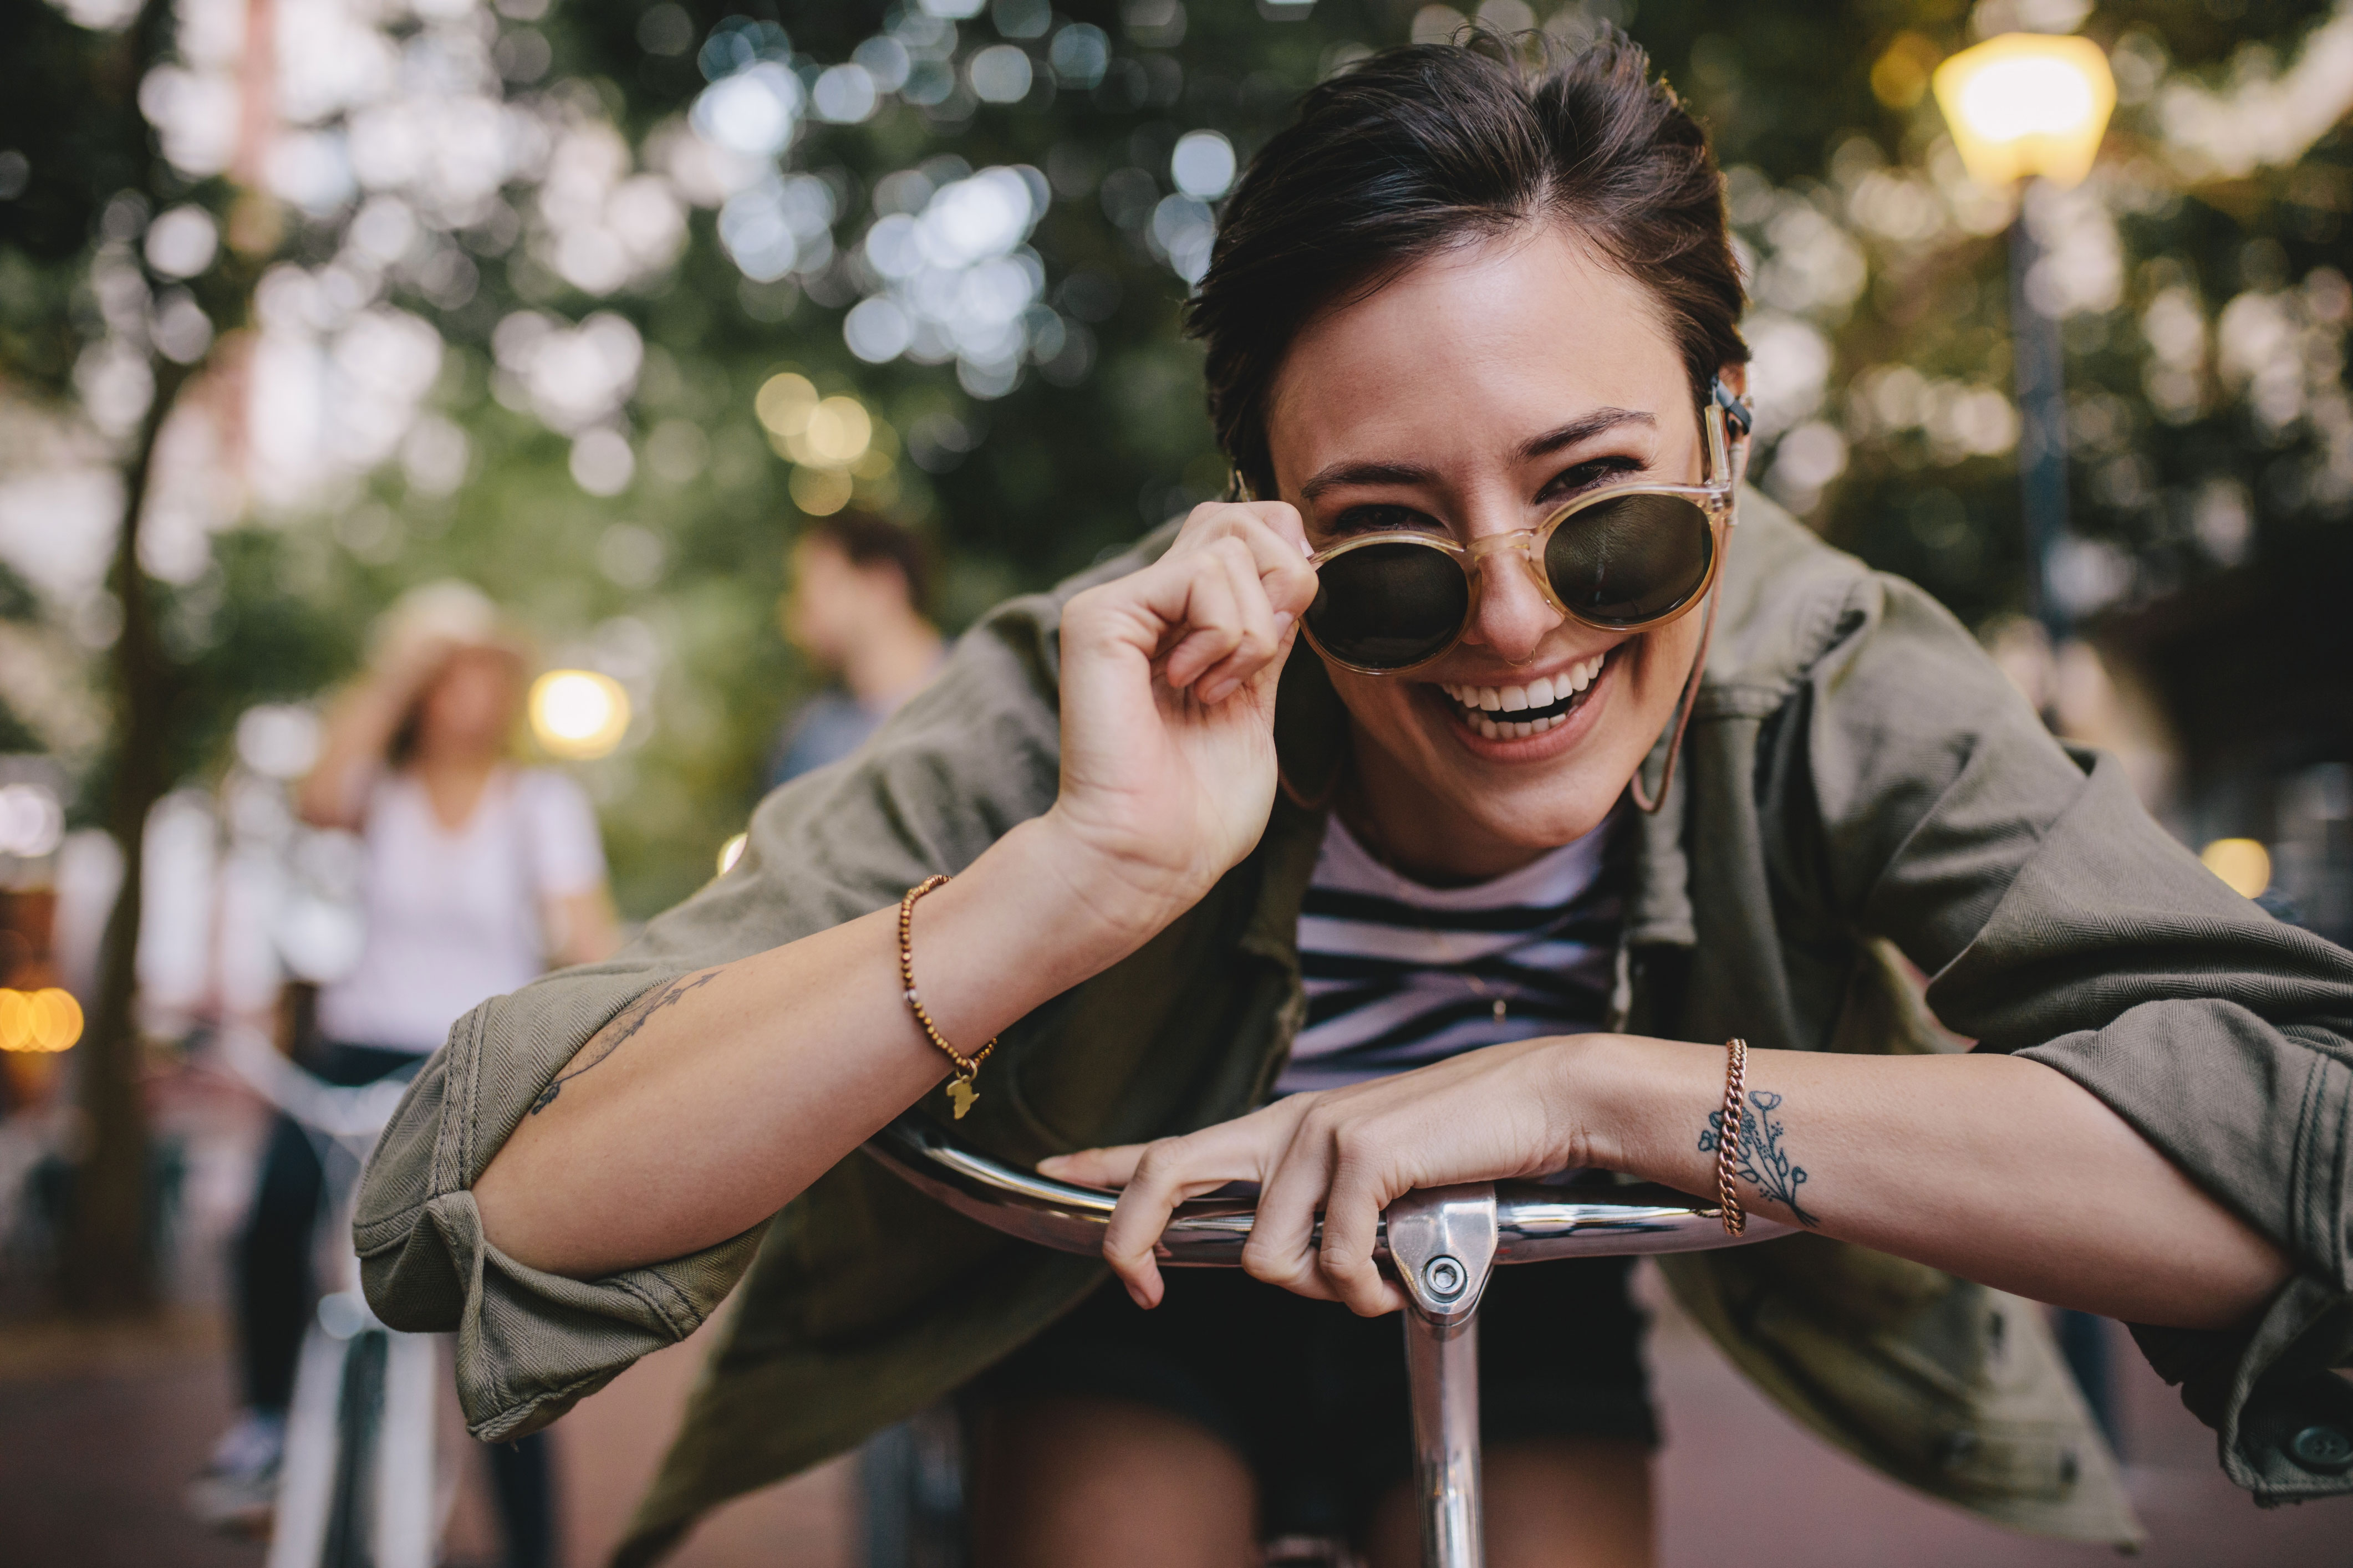 Woman on bicycle laughing.